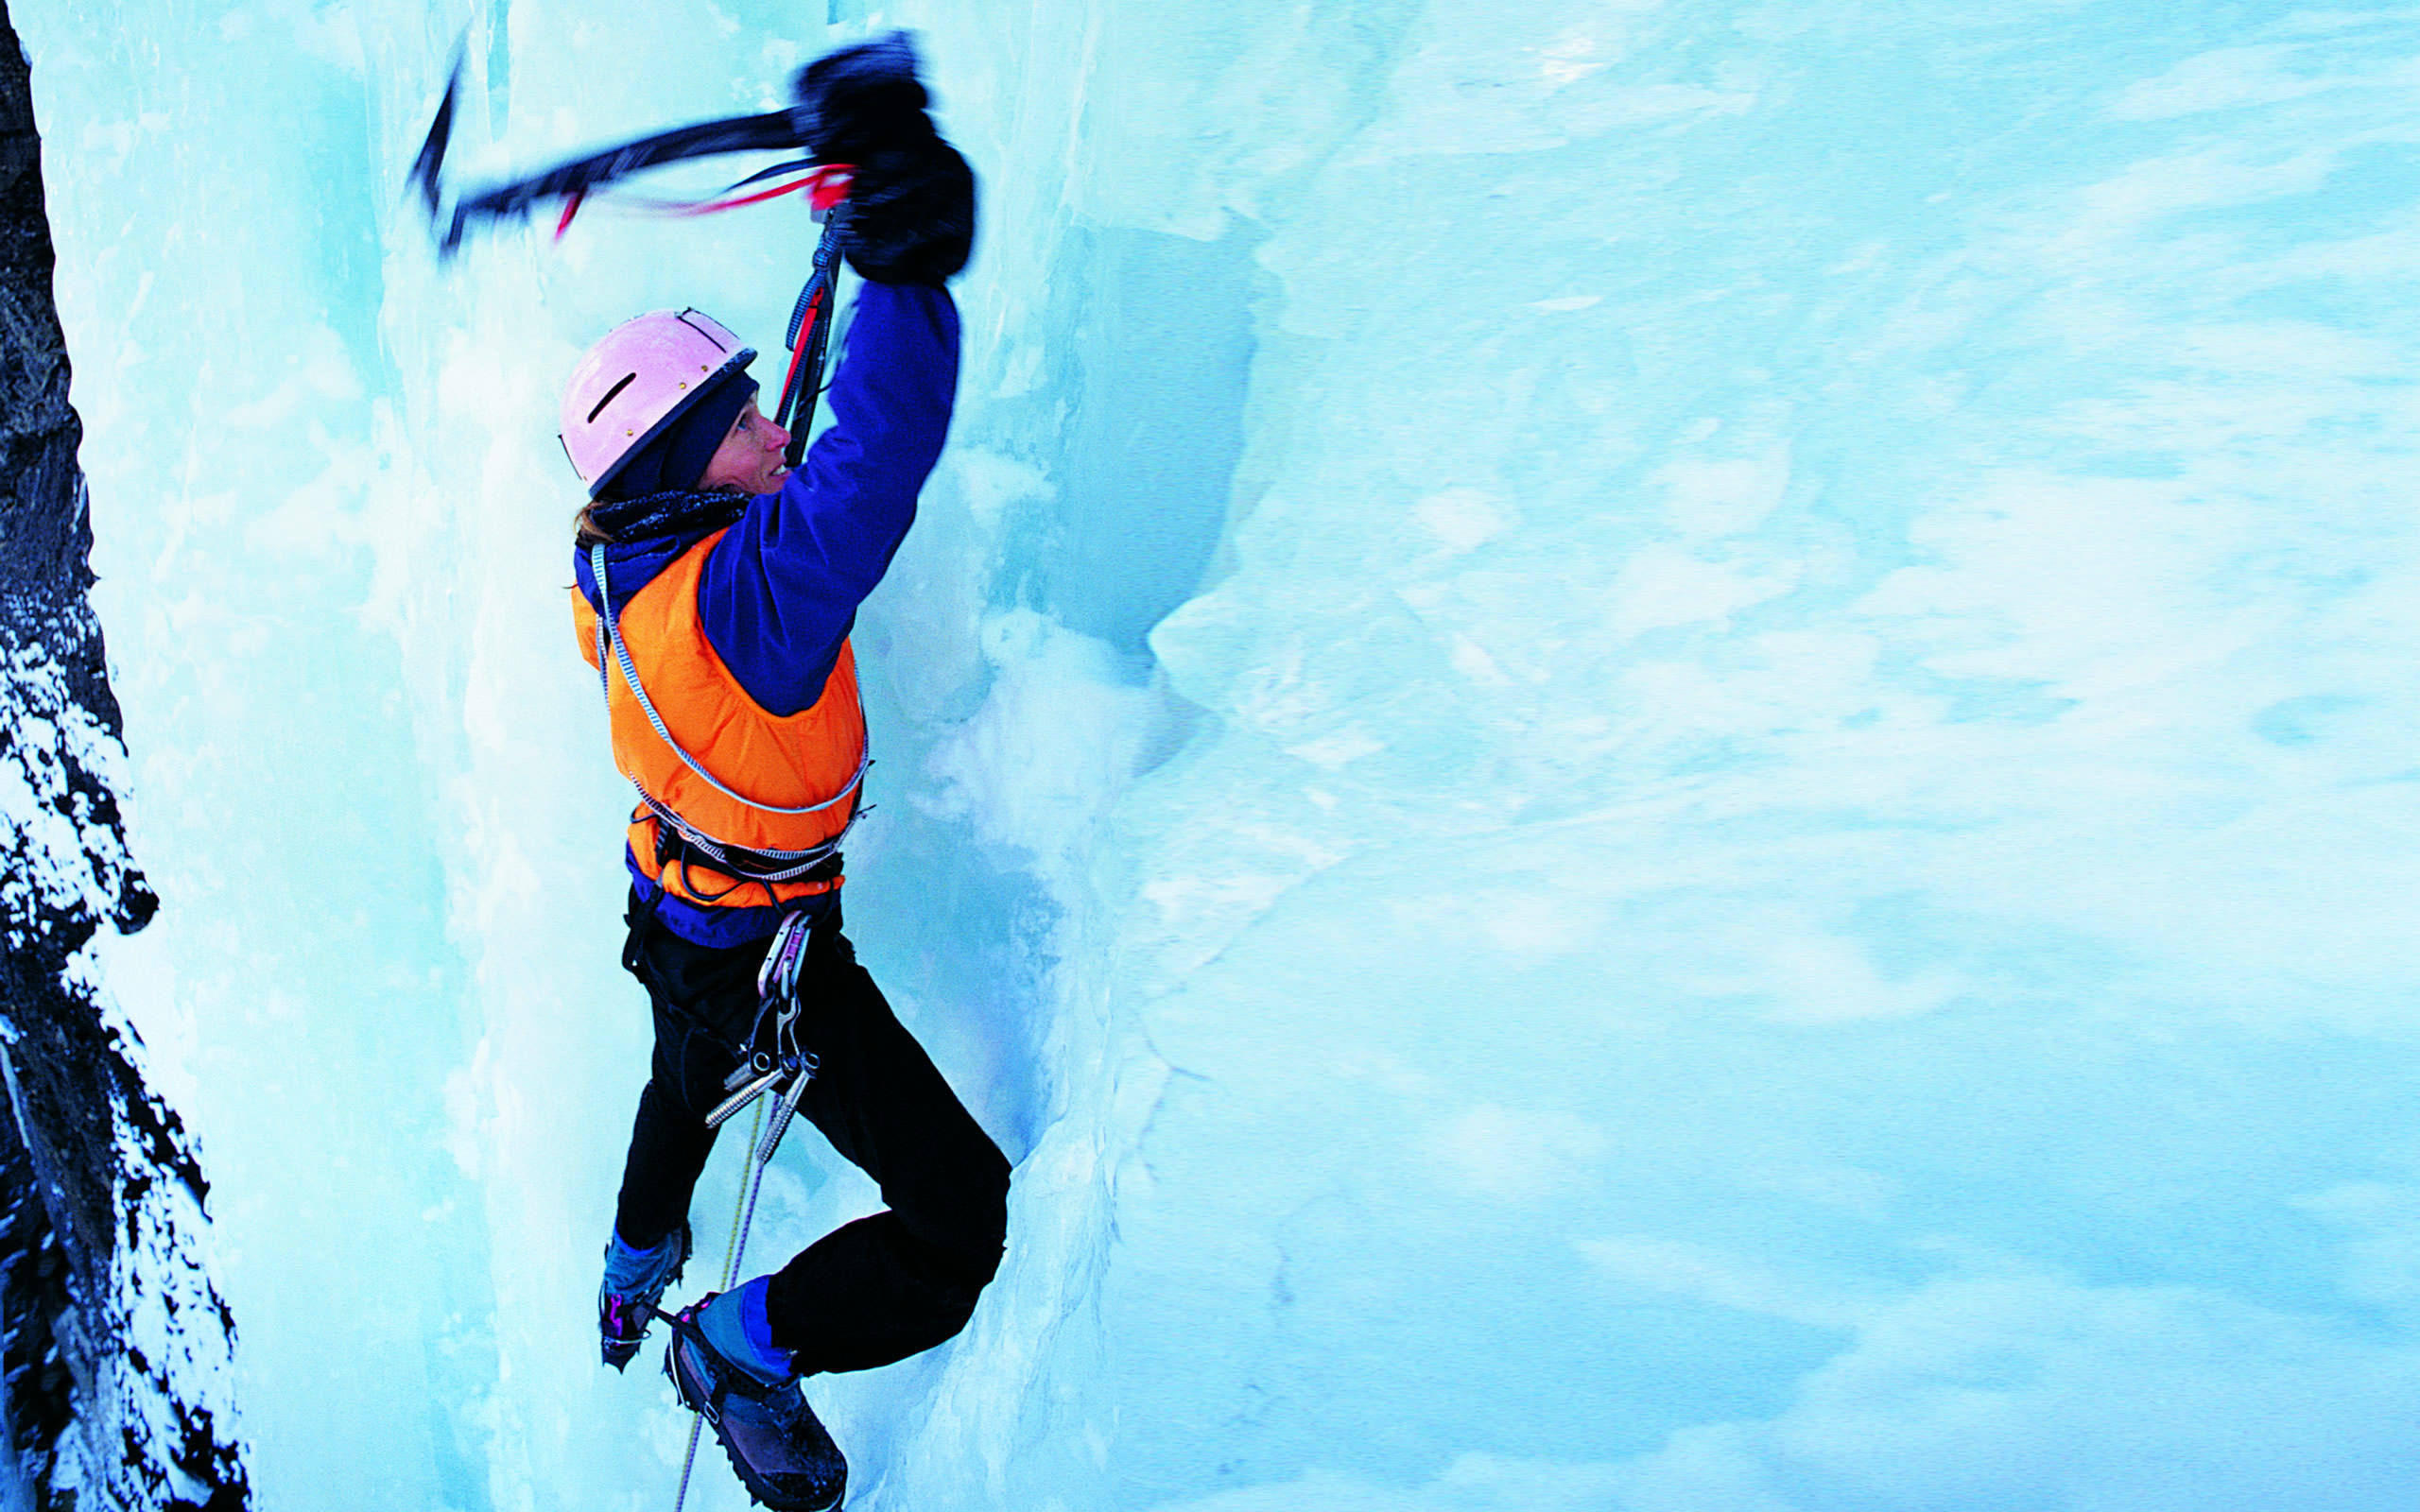 ice climbing wallpaper - photo #5